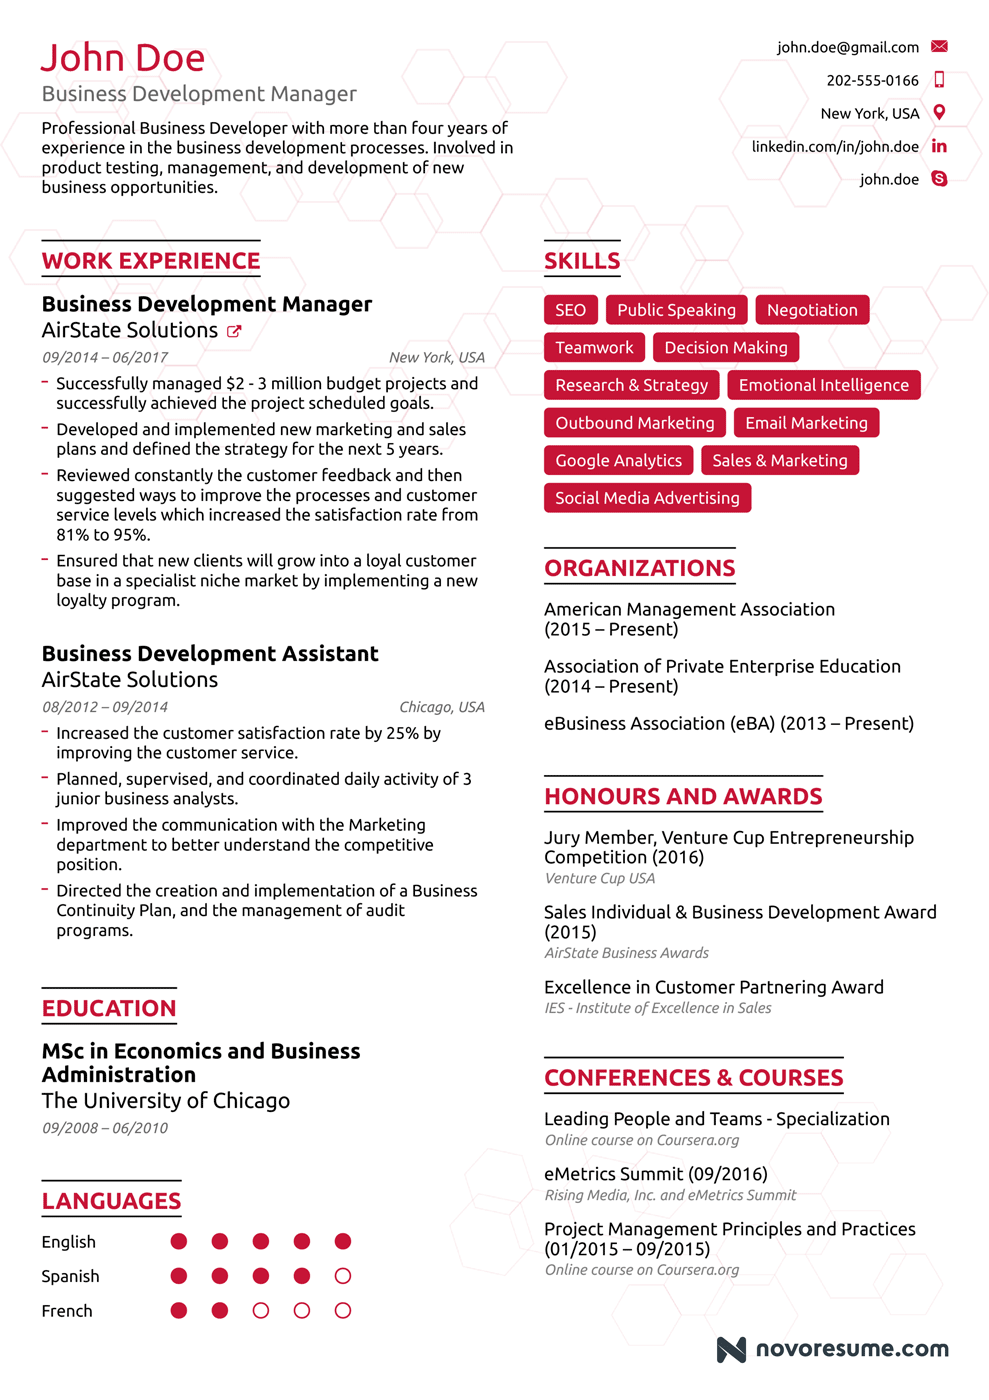 Business Development Manager Resume Example [2018]